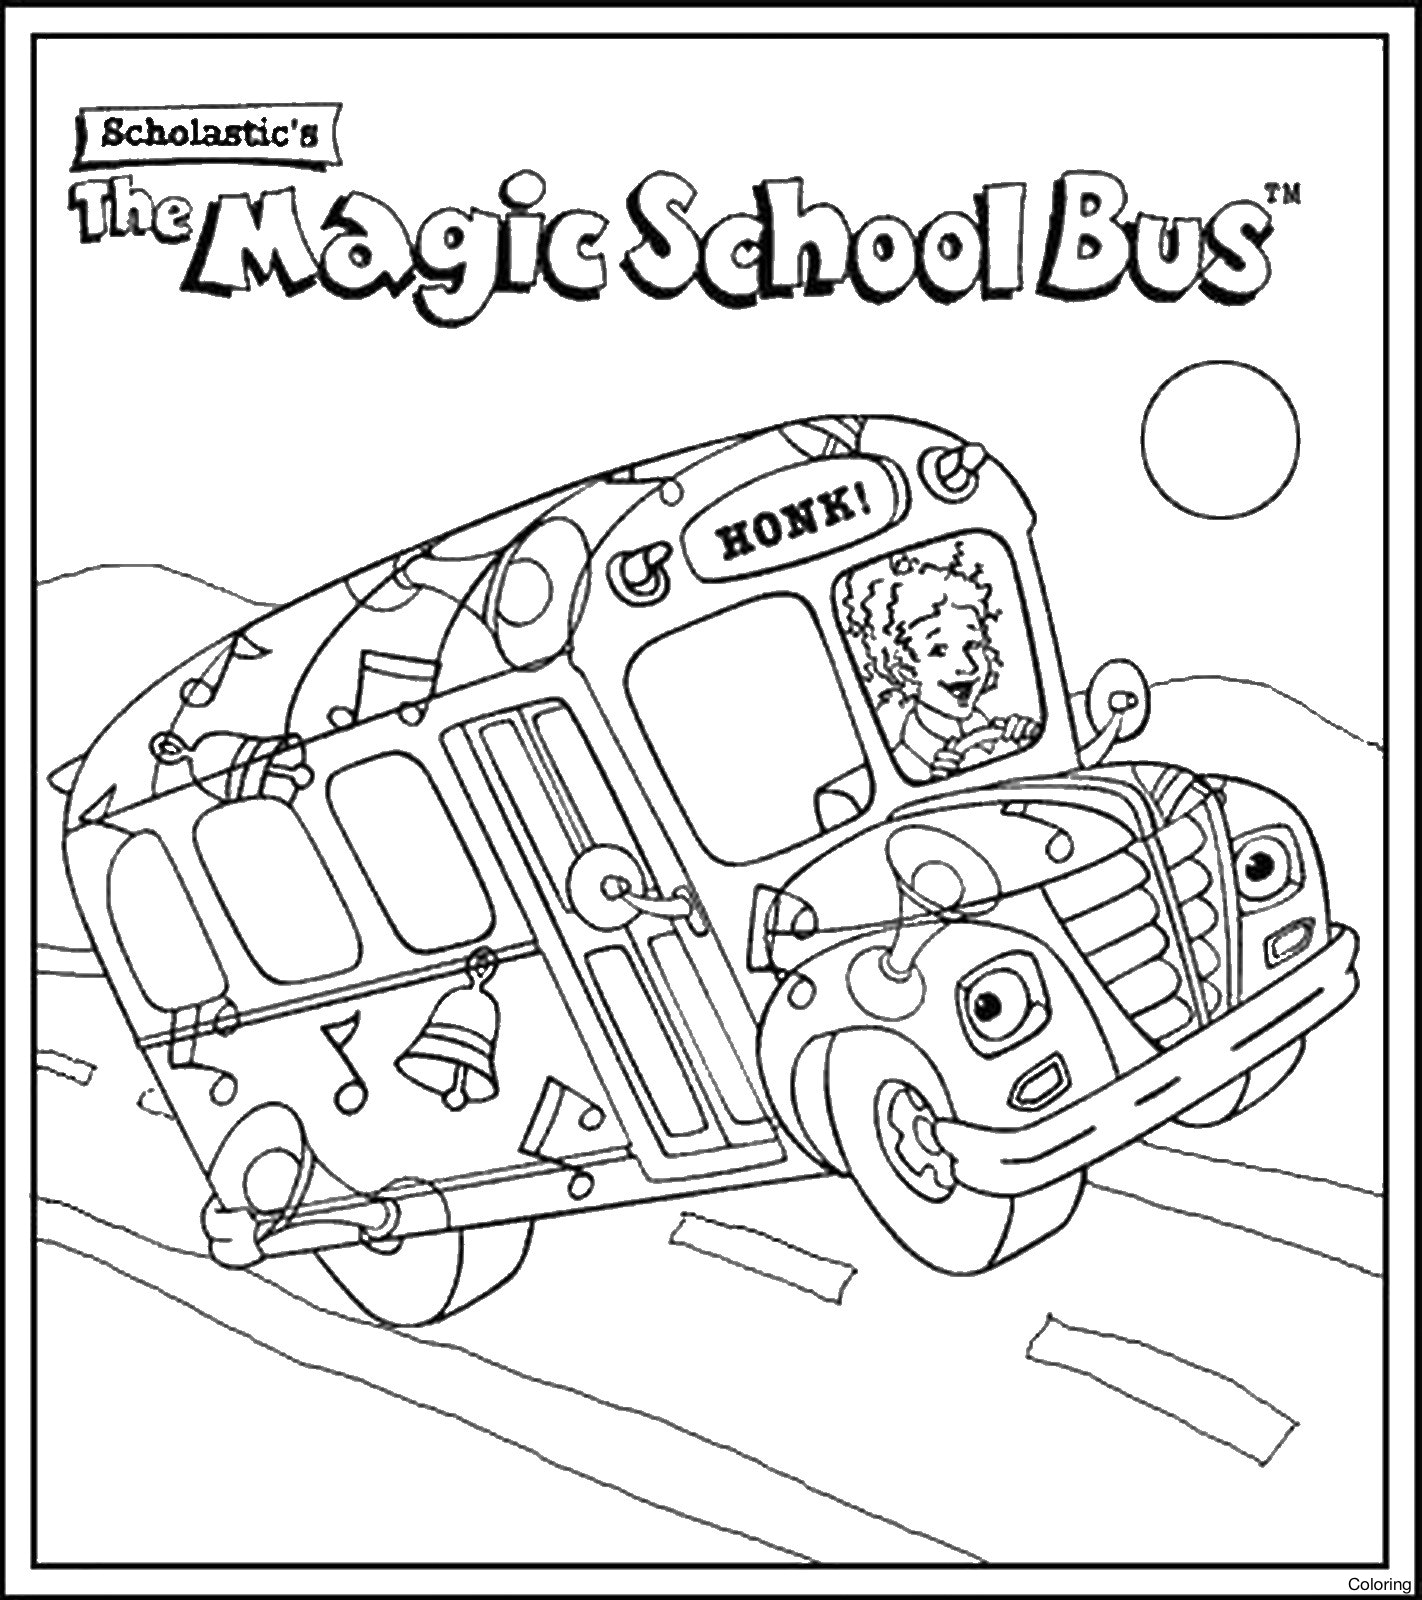 1422x1600 School Coloring Pages Bus Printable Schoolhouse Magic Yellow The